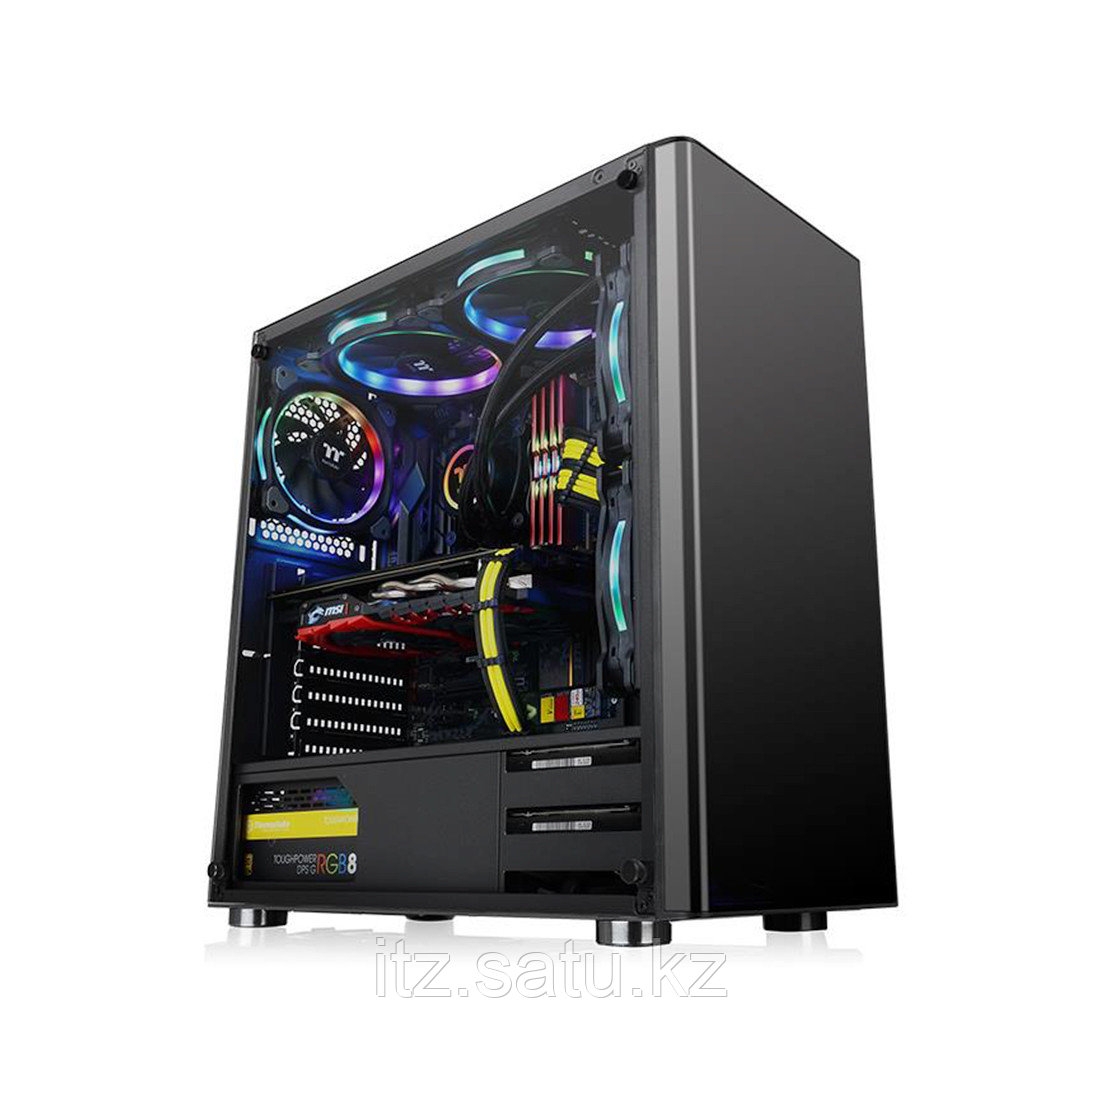 Компьютерный корпус Thermaltake V200 TG без Б/П